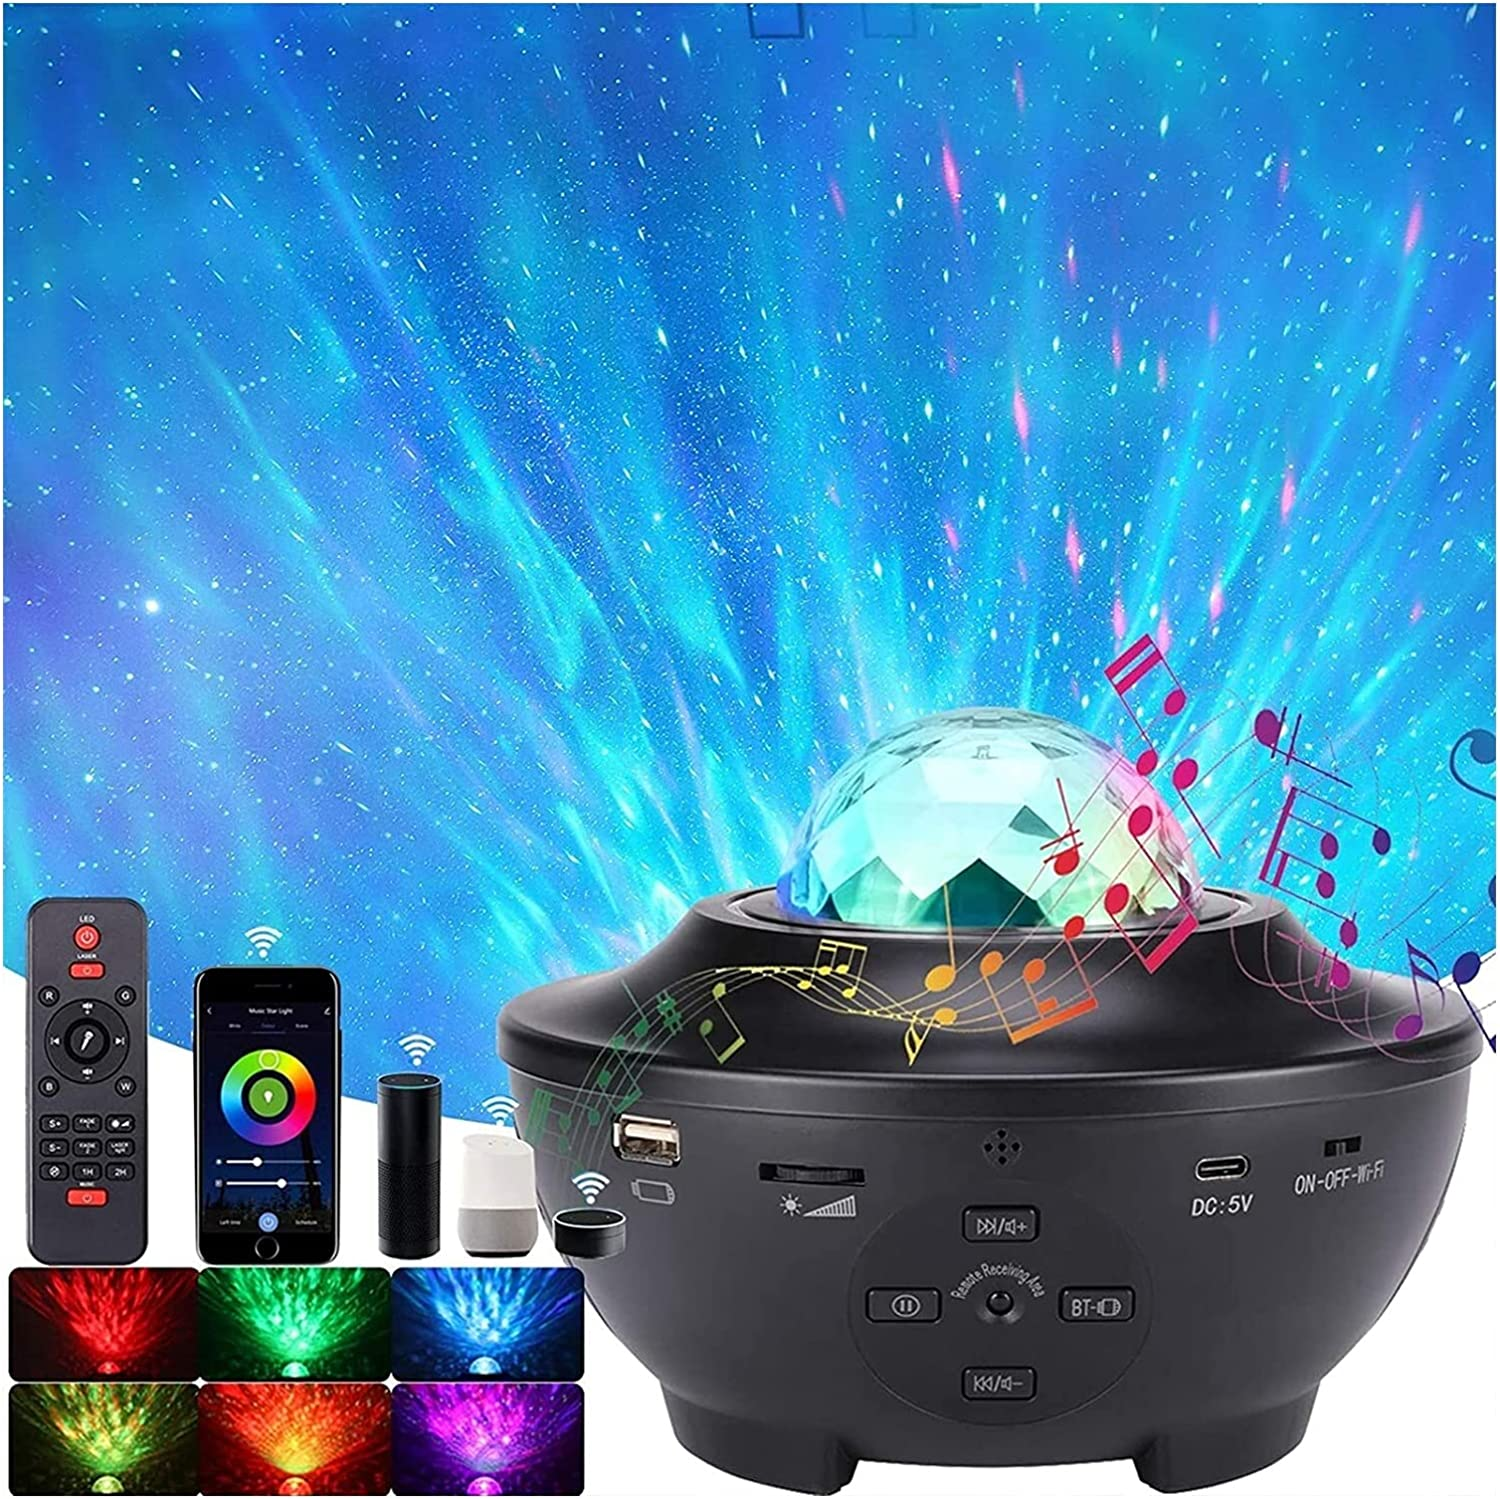 Star Projector Night Cheap super special price Light Sky Ocean Starry New popularity Wave